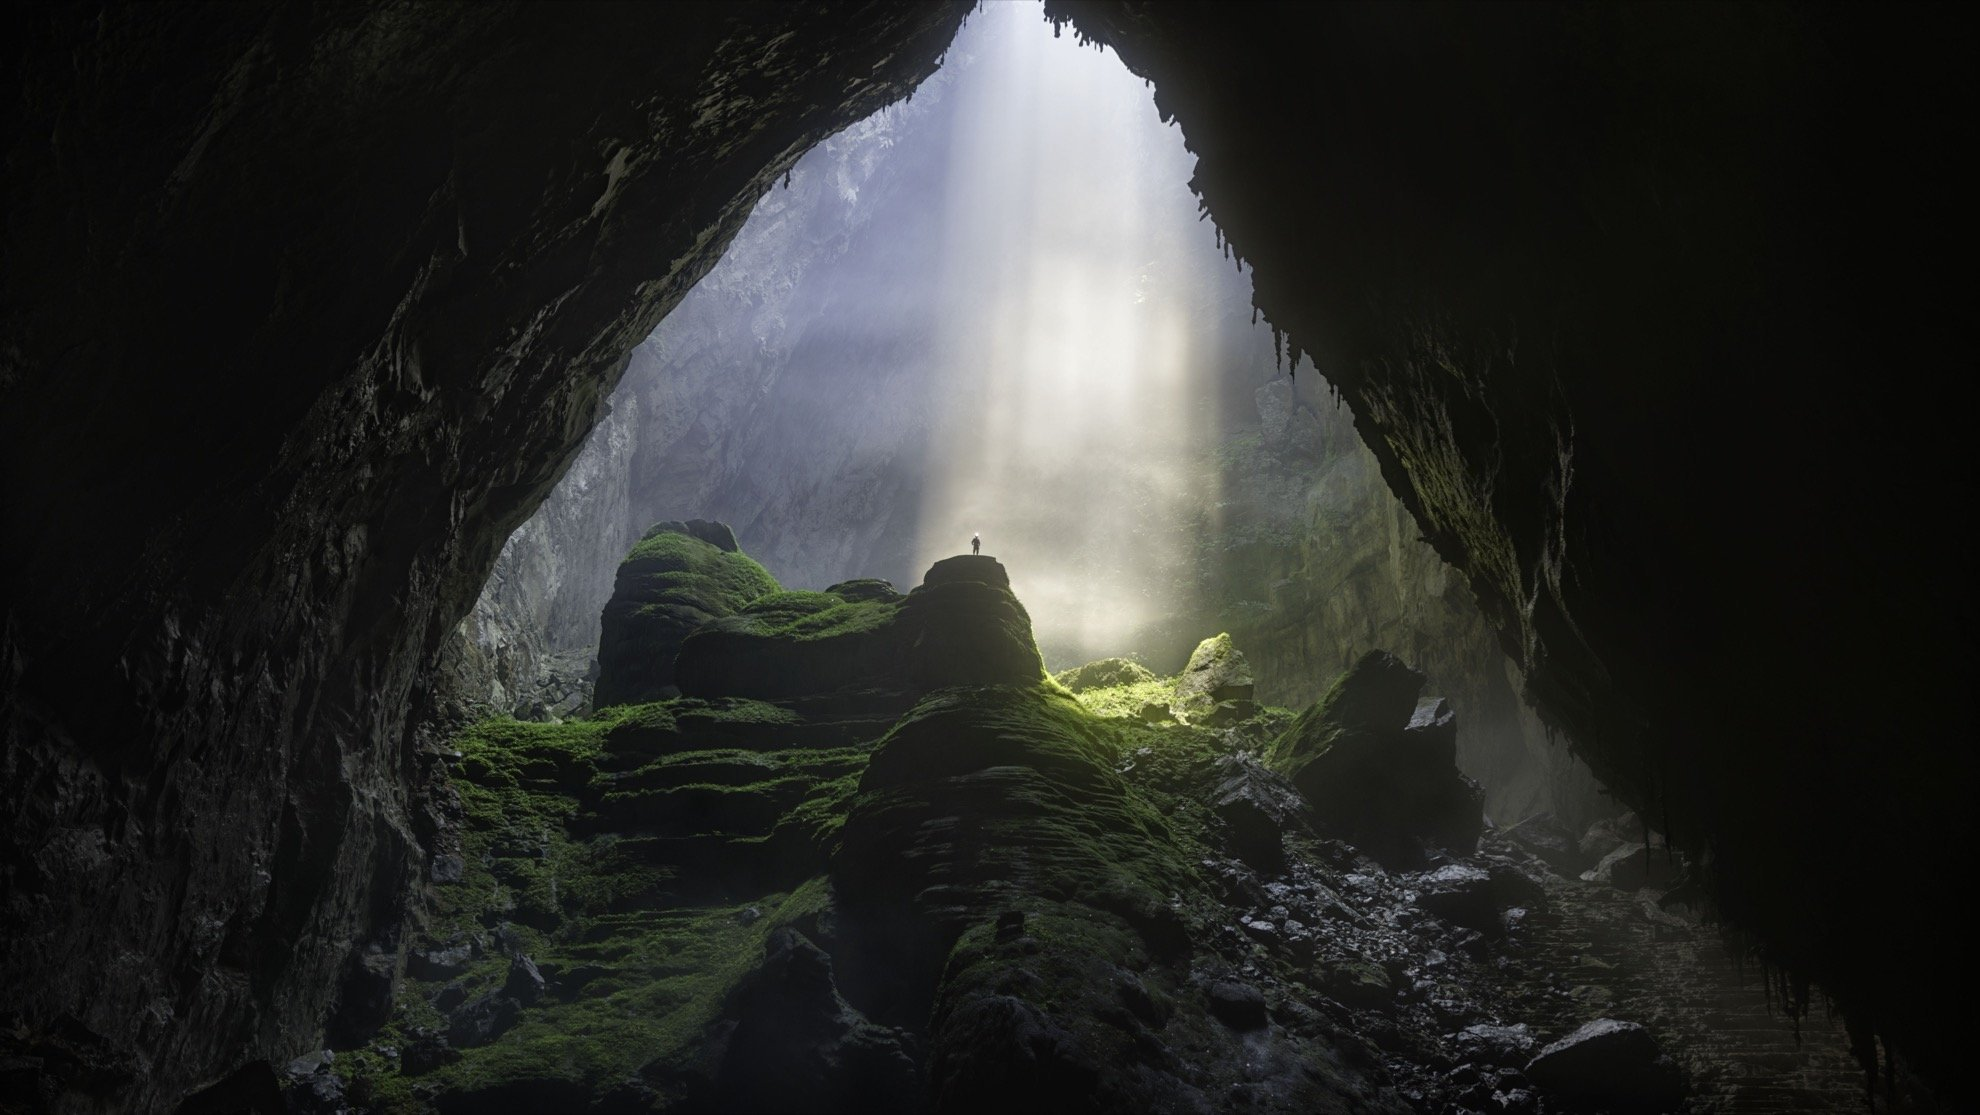 Meet The Largest Cave In The World: Vietnam's Son Doong Cave